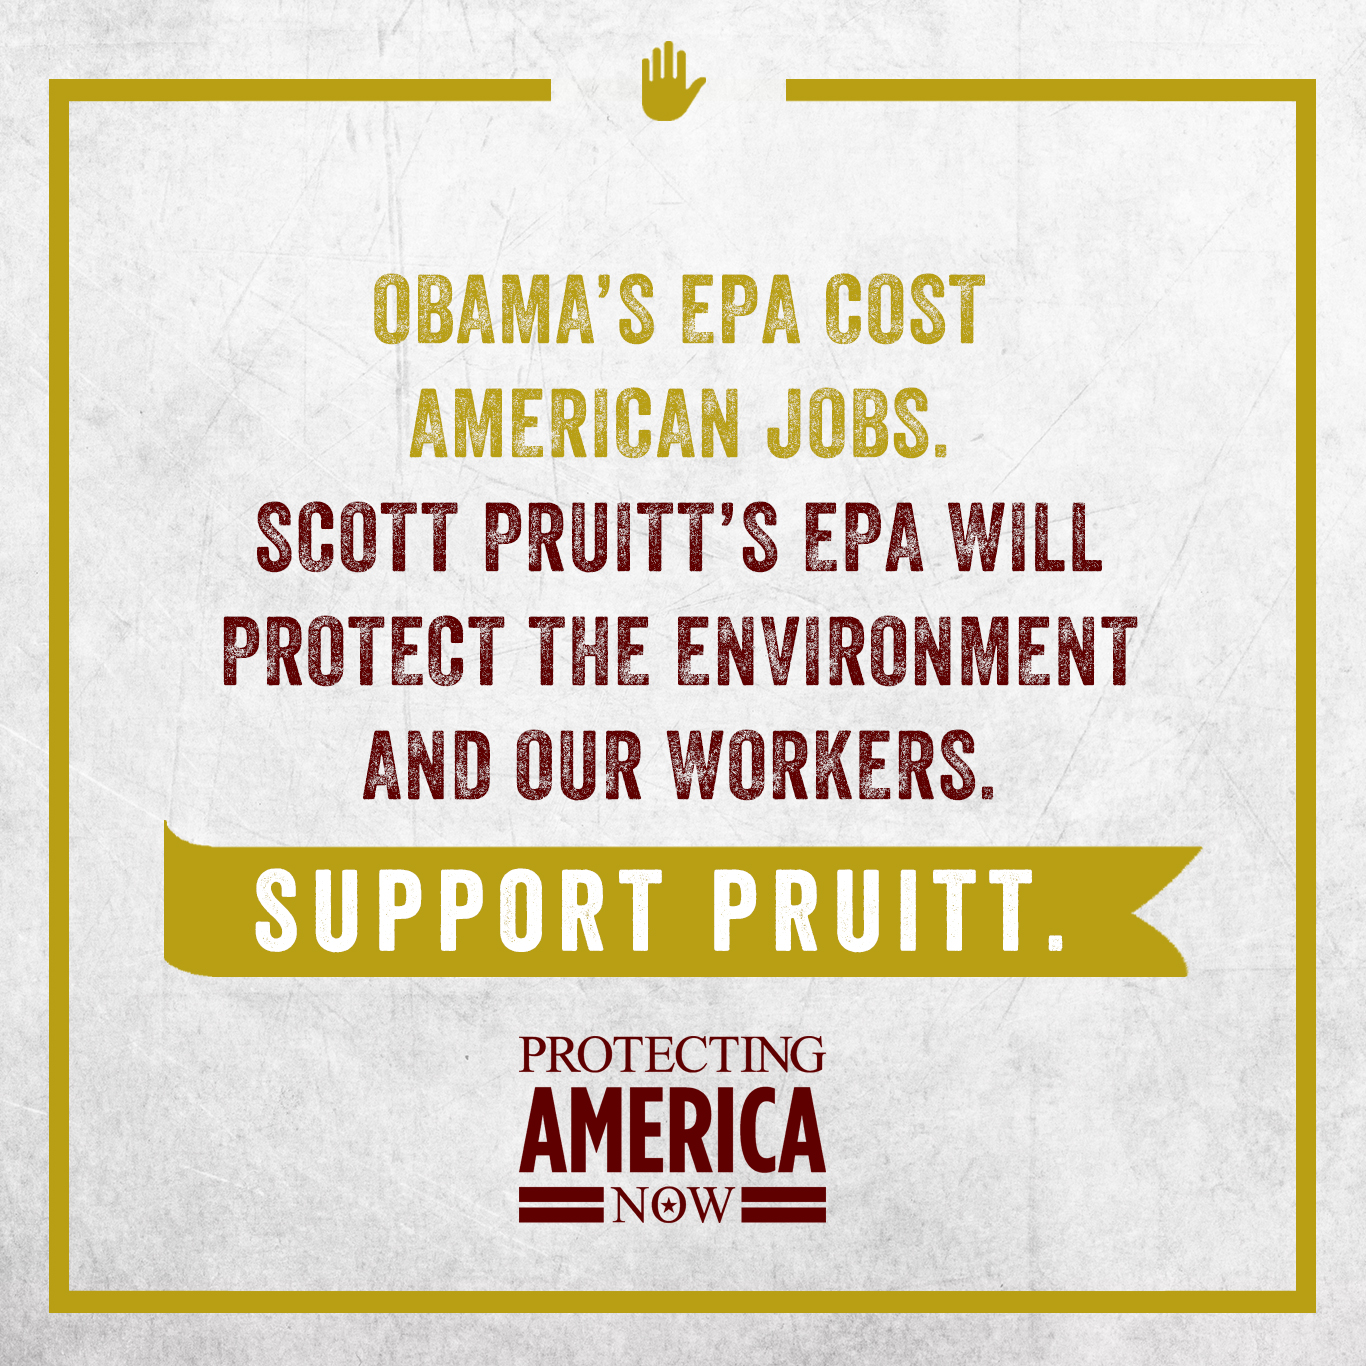 support pruitt